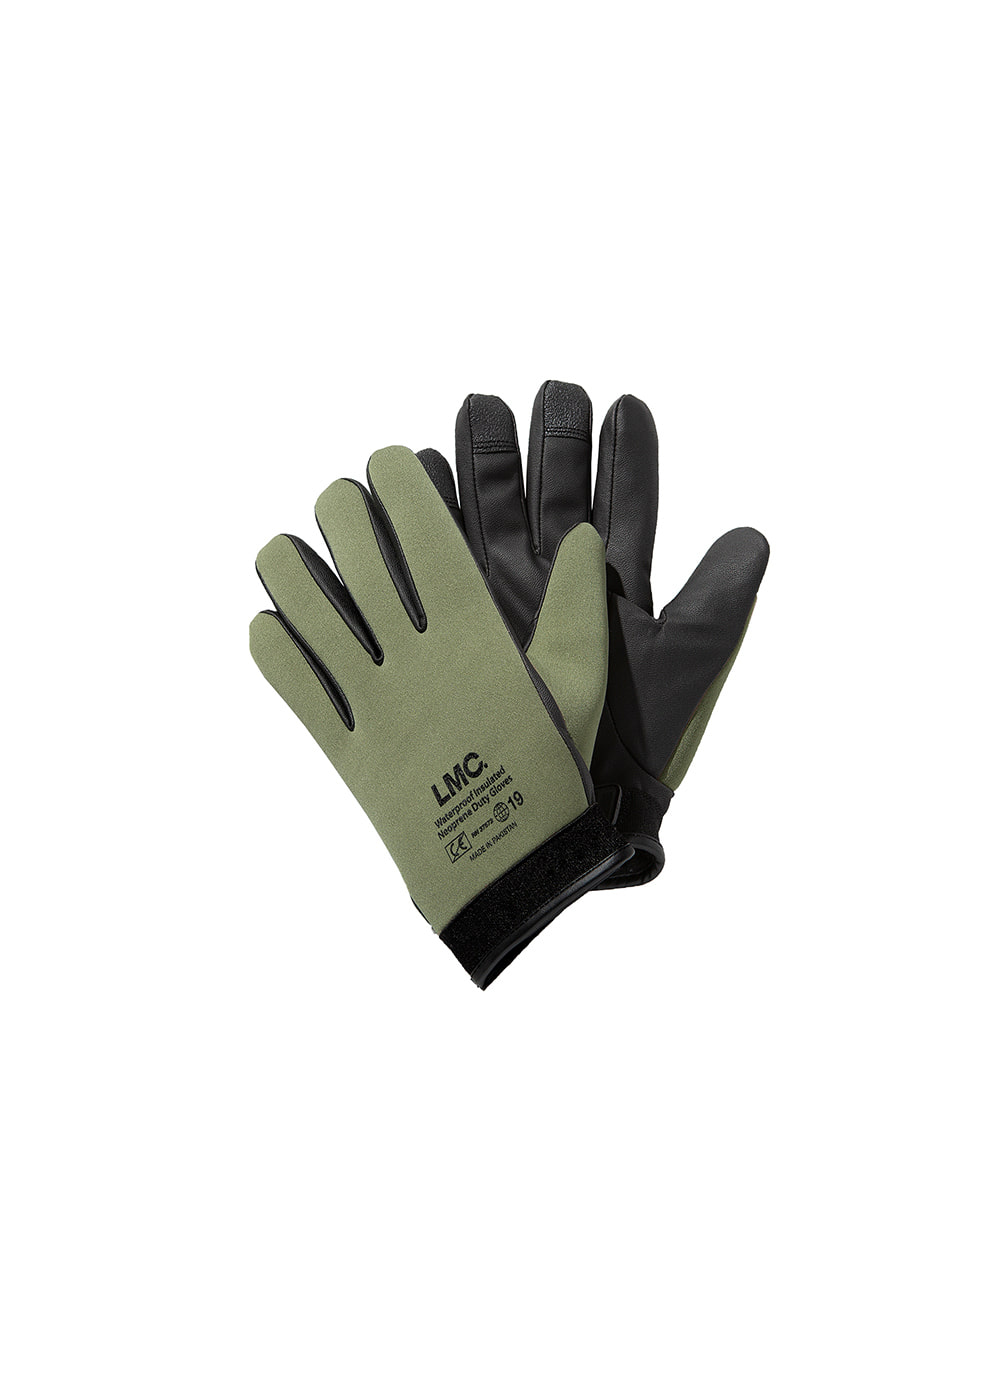 LMC NEOPRENE GLOVE REMADE BY LMC olive